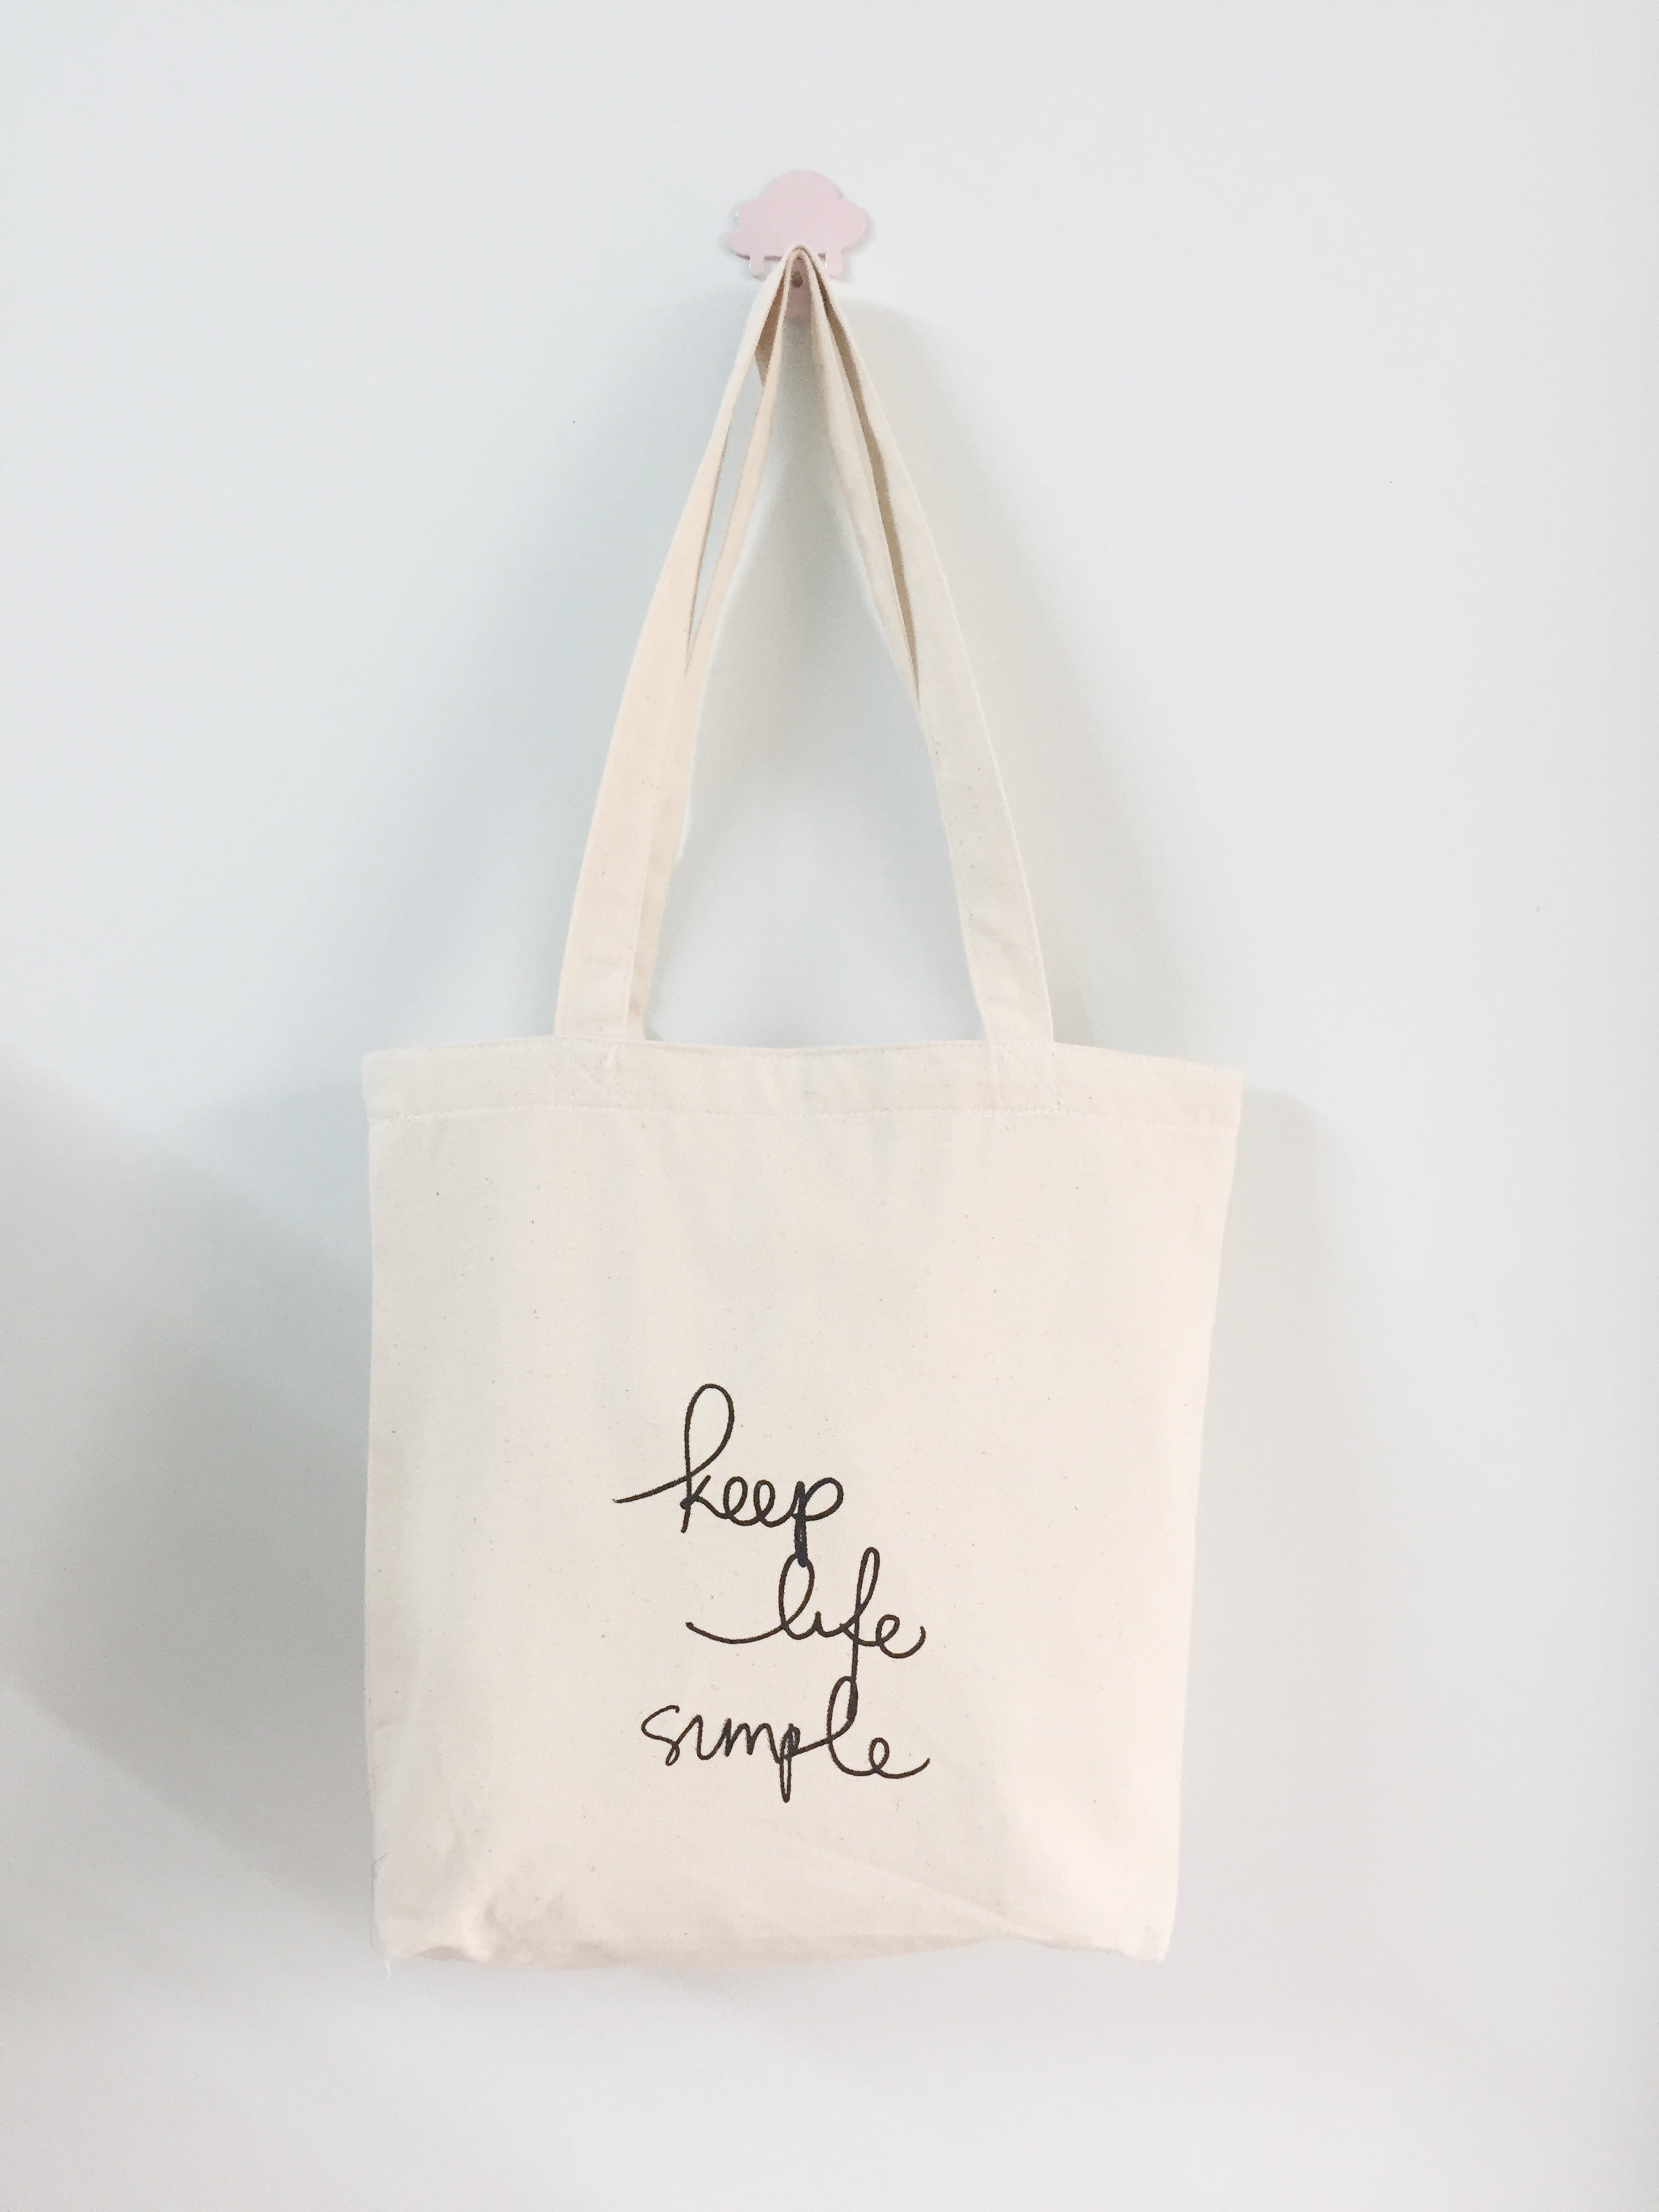 HẠT MƯA - TOTE BAG - QUOTE: KEEP LIFE SIMPLE